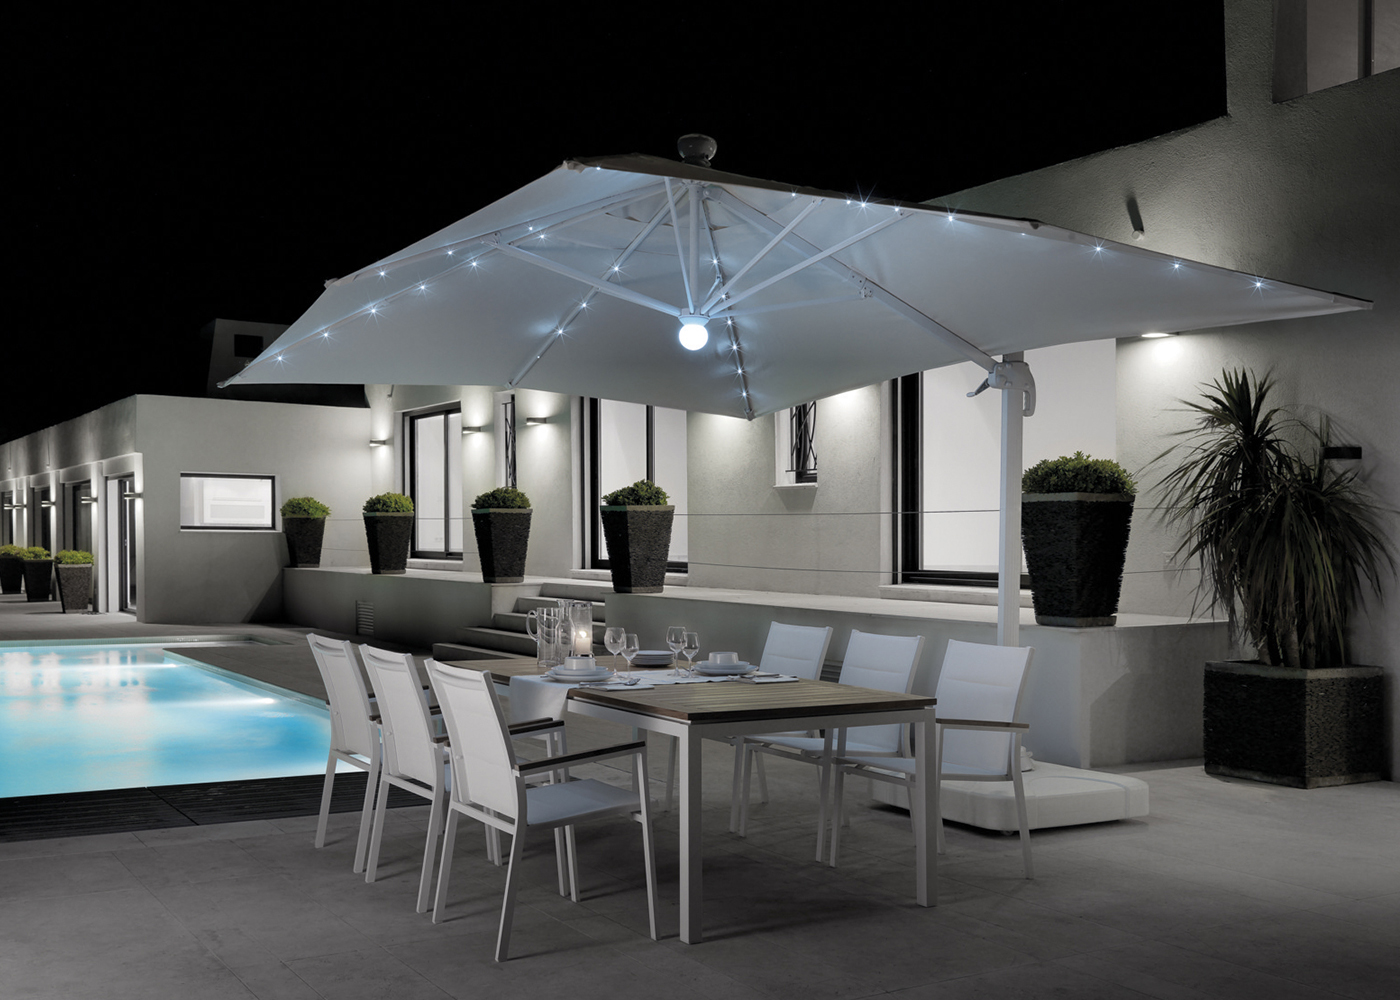 parasol d port parasol rectangulaire demi parasol i maison cr ative. Black Bedroom Furniture Sets. Home Design Ideas